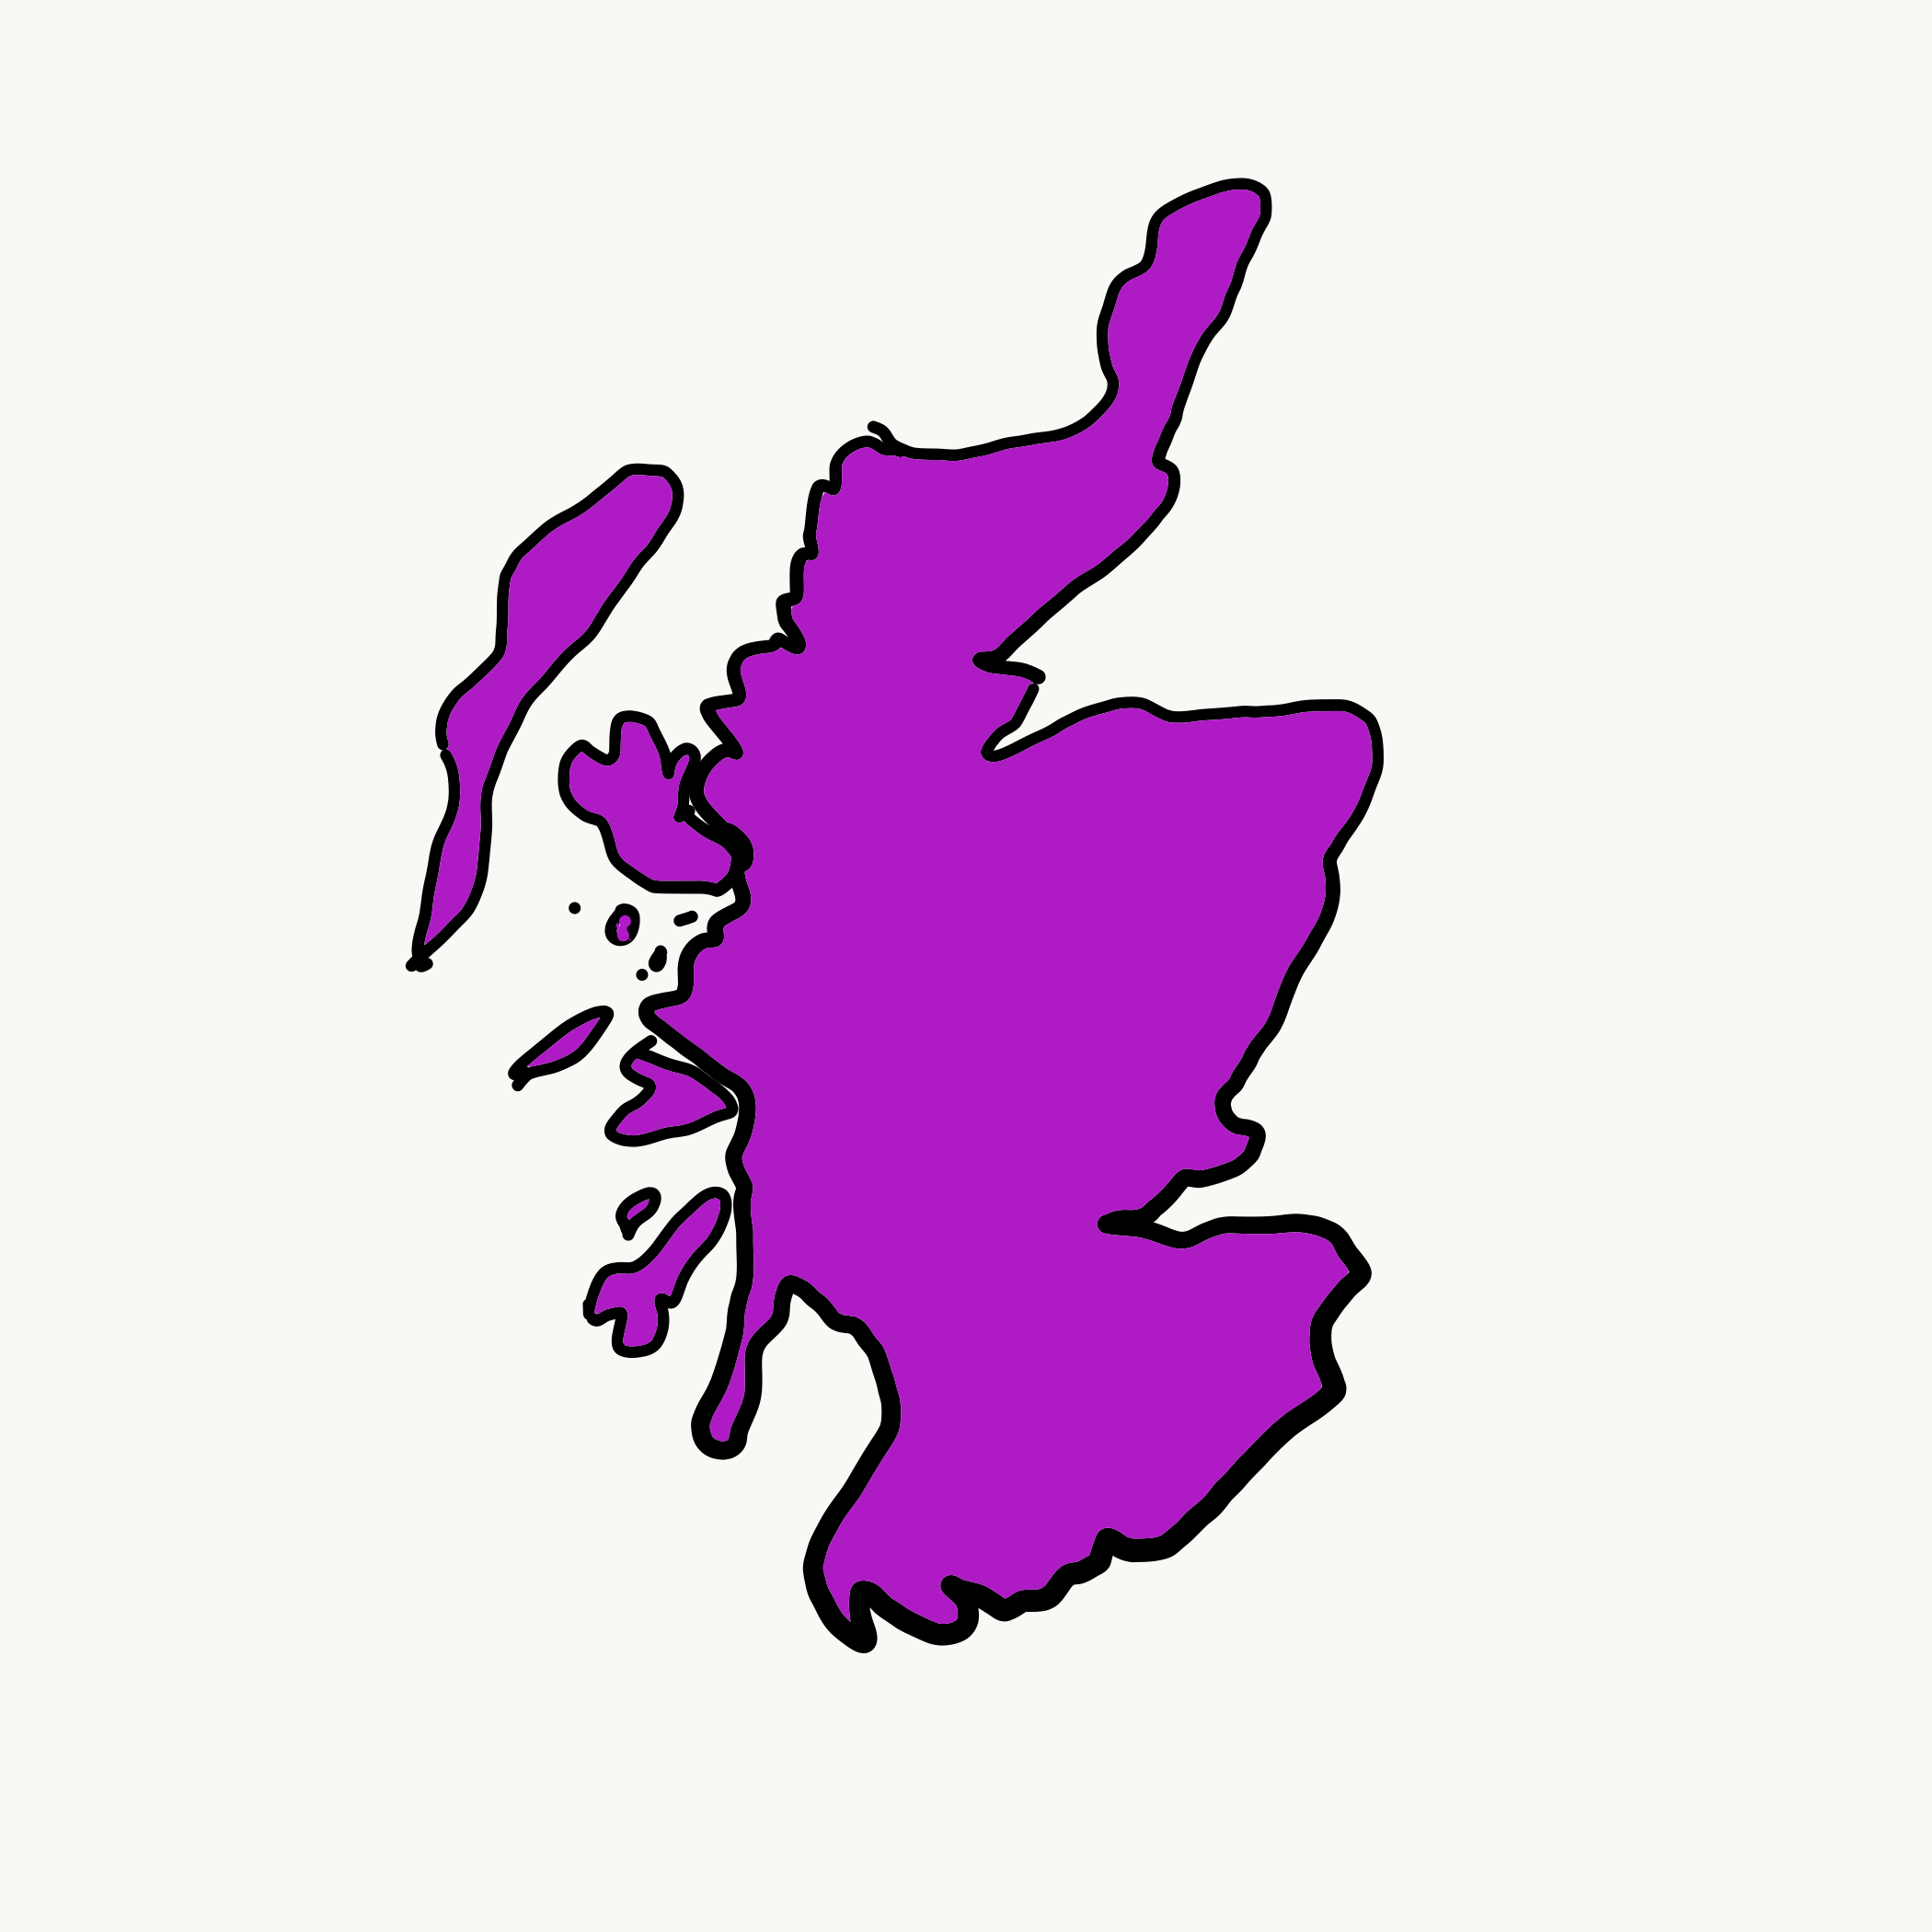 Hand drawn map of Scotland